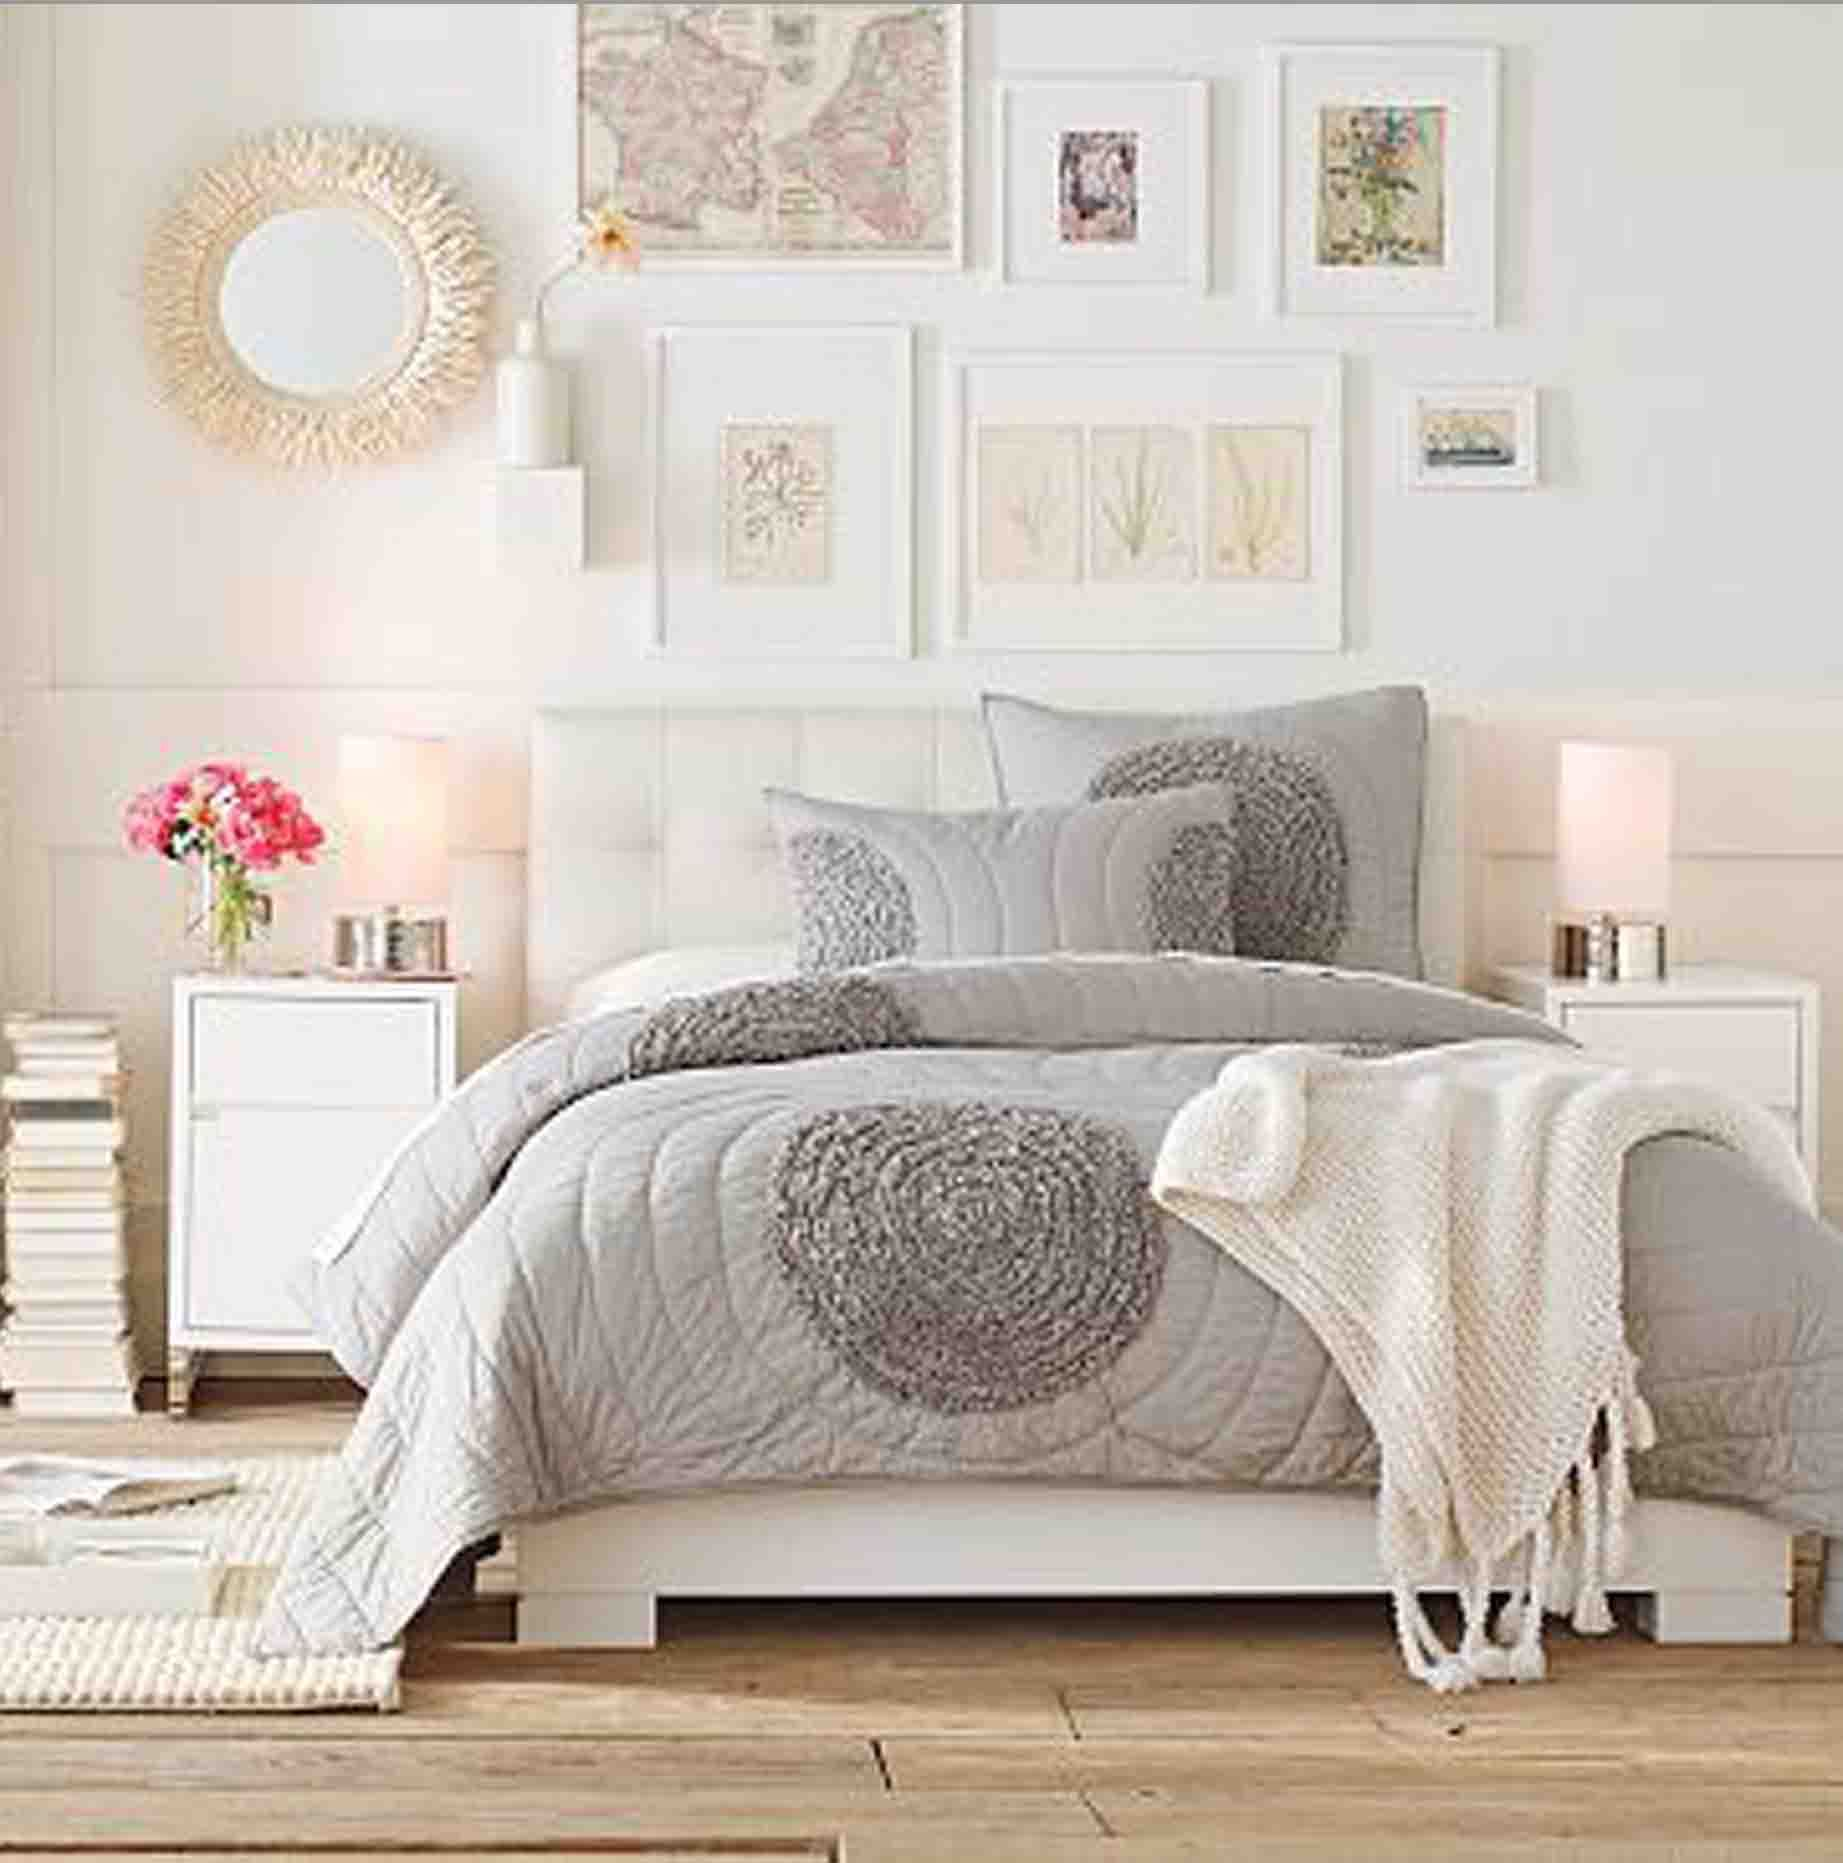 Light And Bright Bedroom Ideas. Grey, Nutral, White